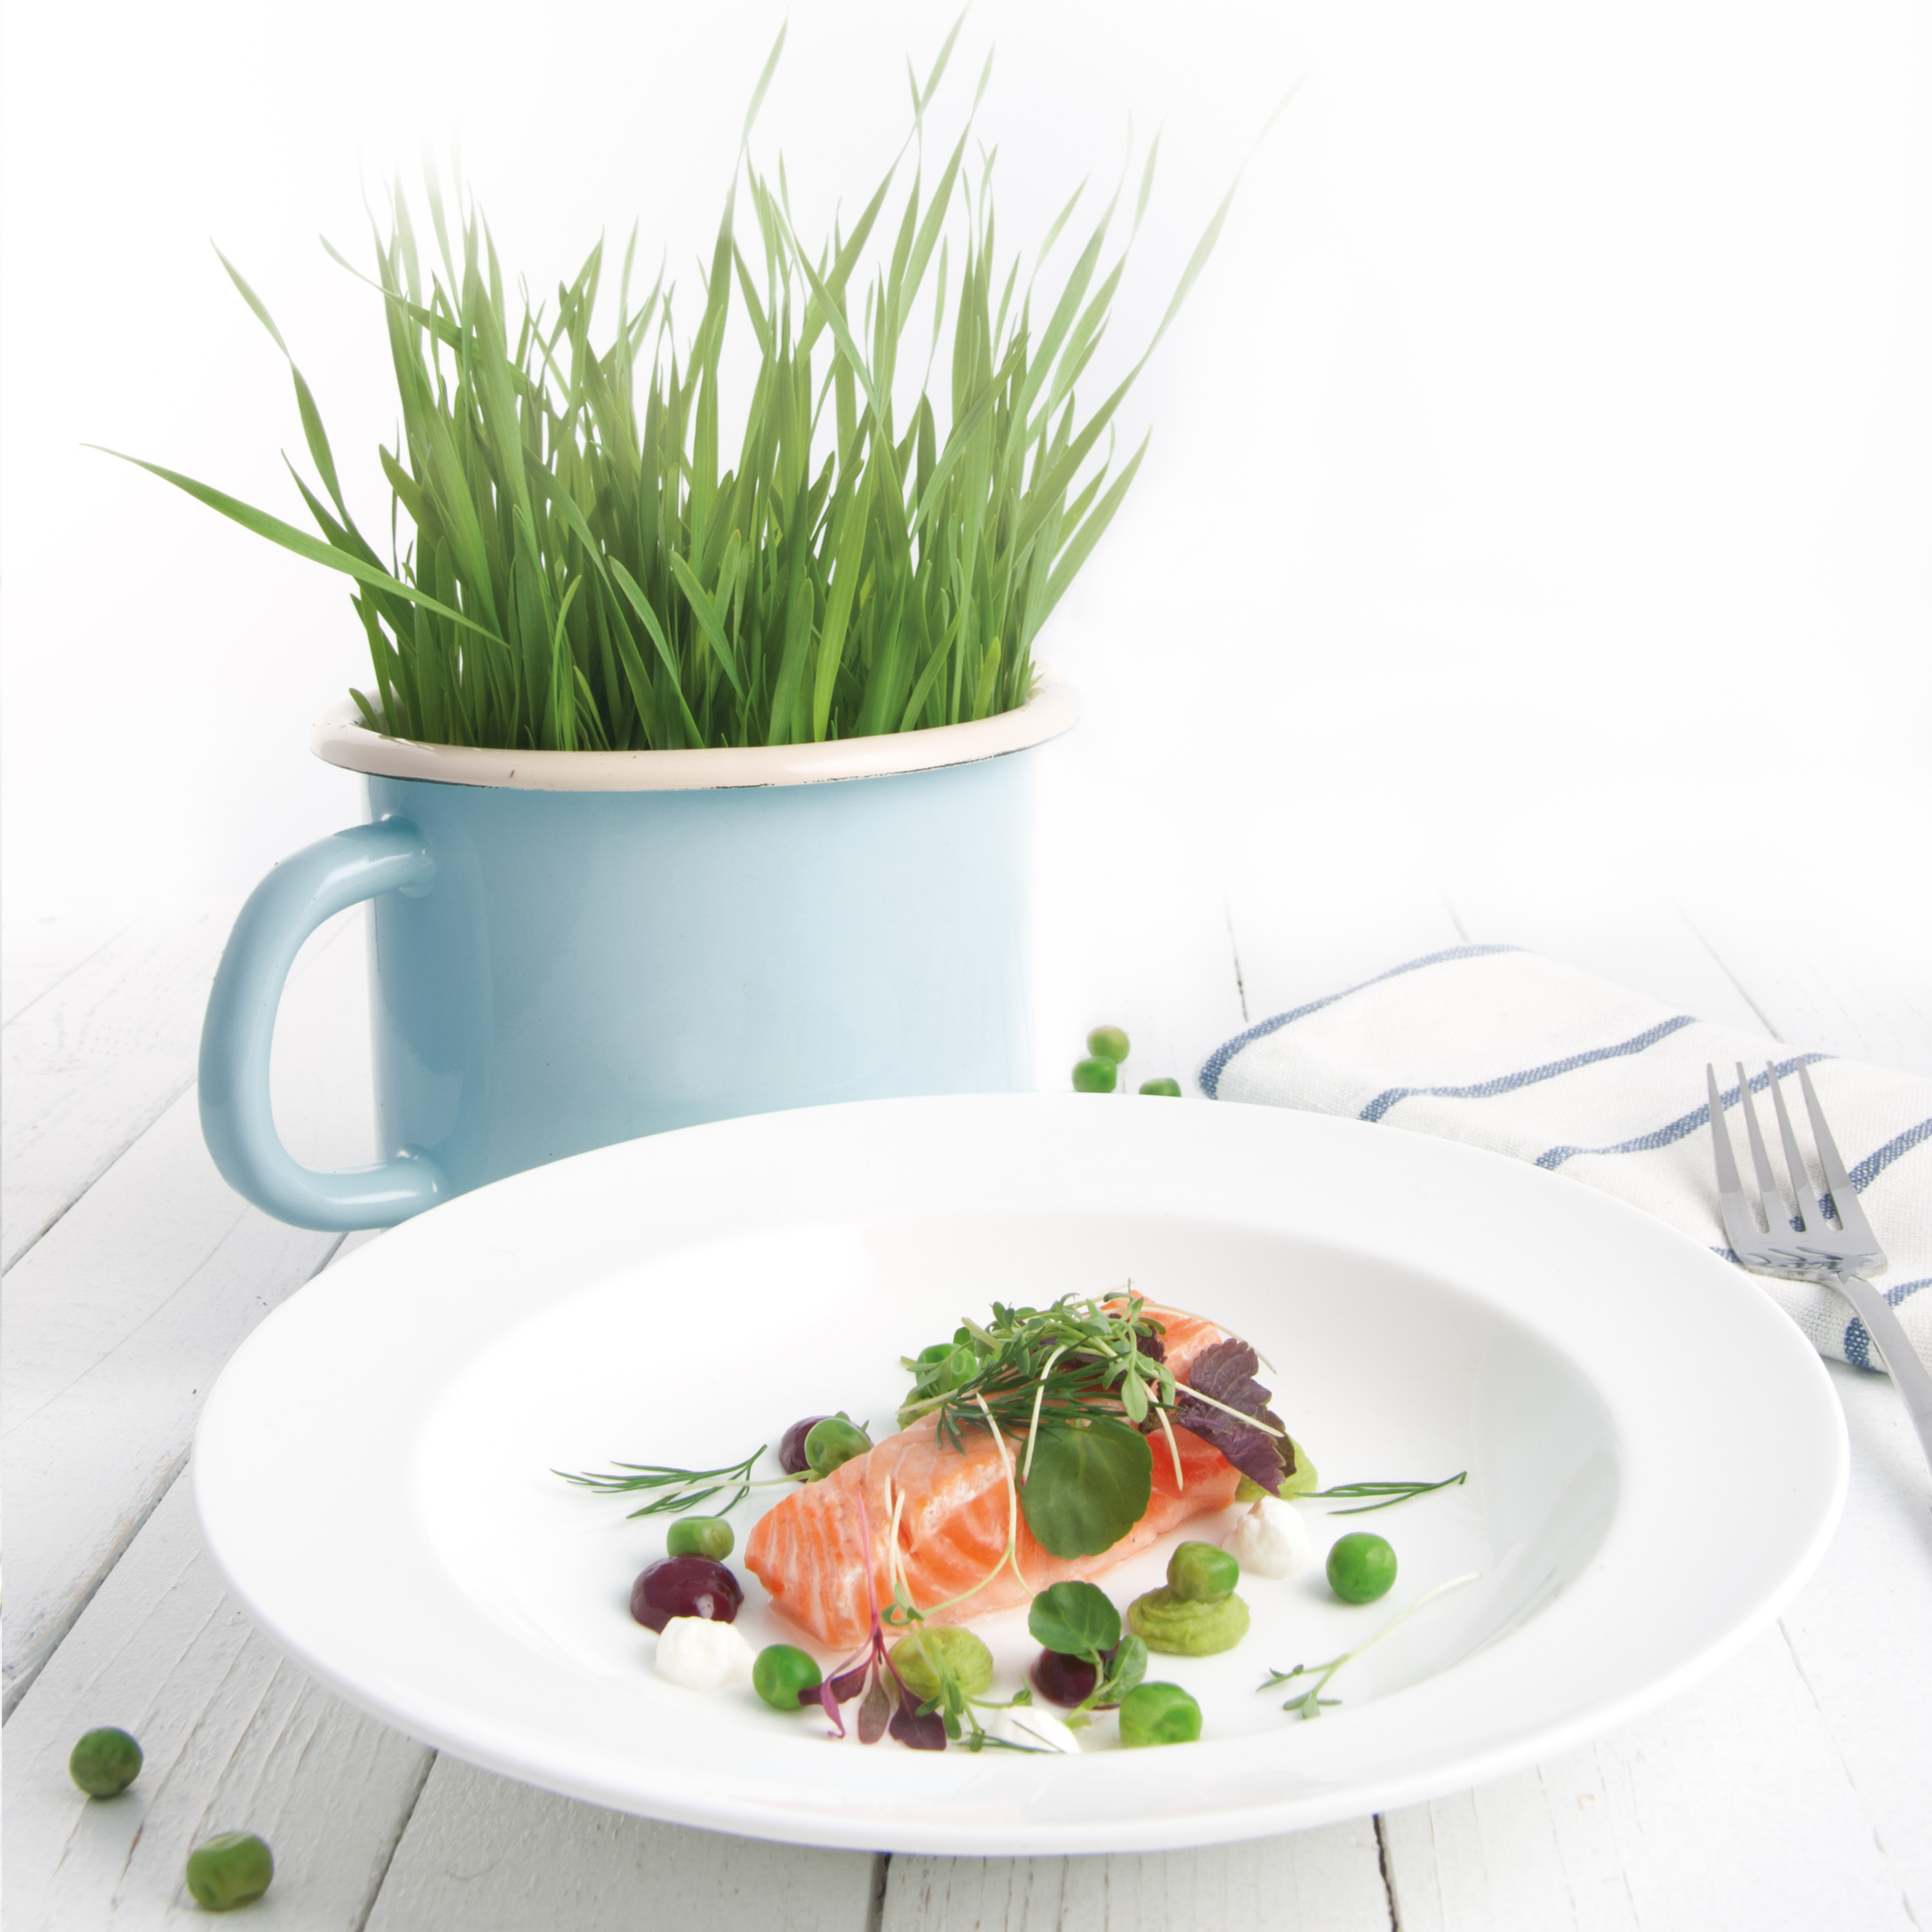 Fried Norwegian Salmon with Green Peas and Currant Mustard_LR